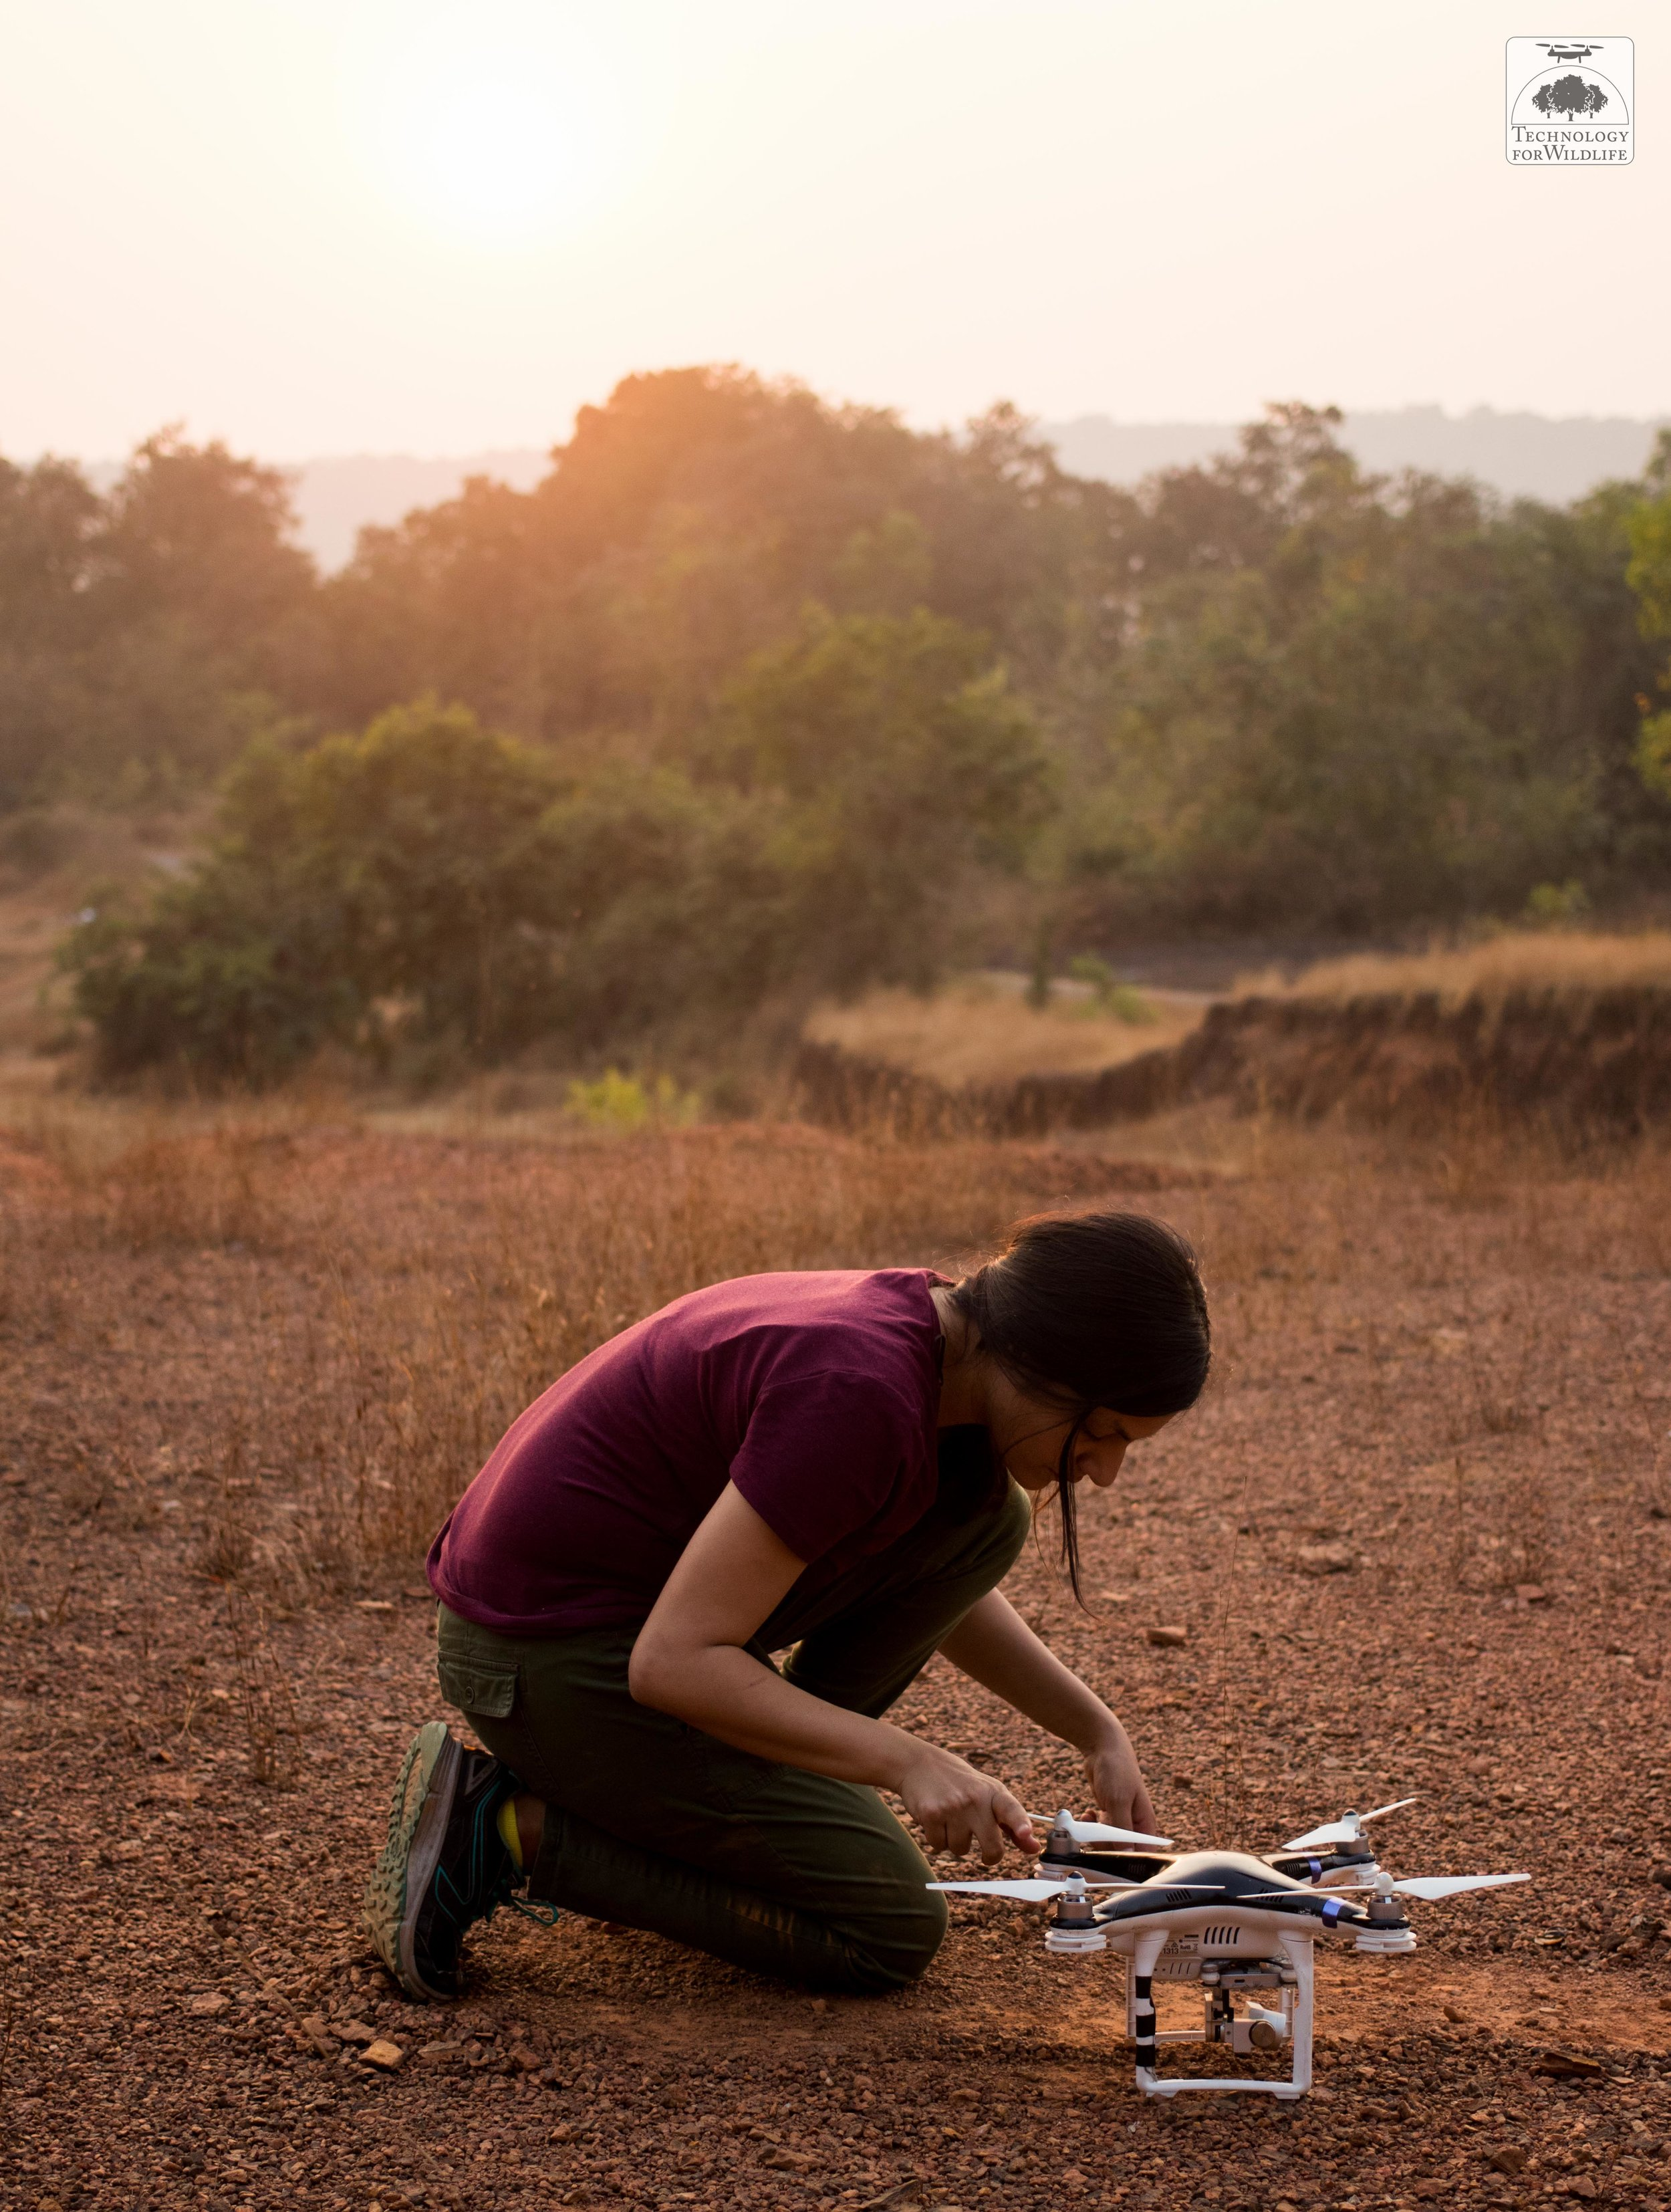 The author preparing a drone for flight